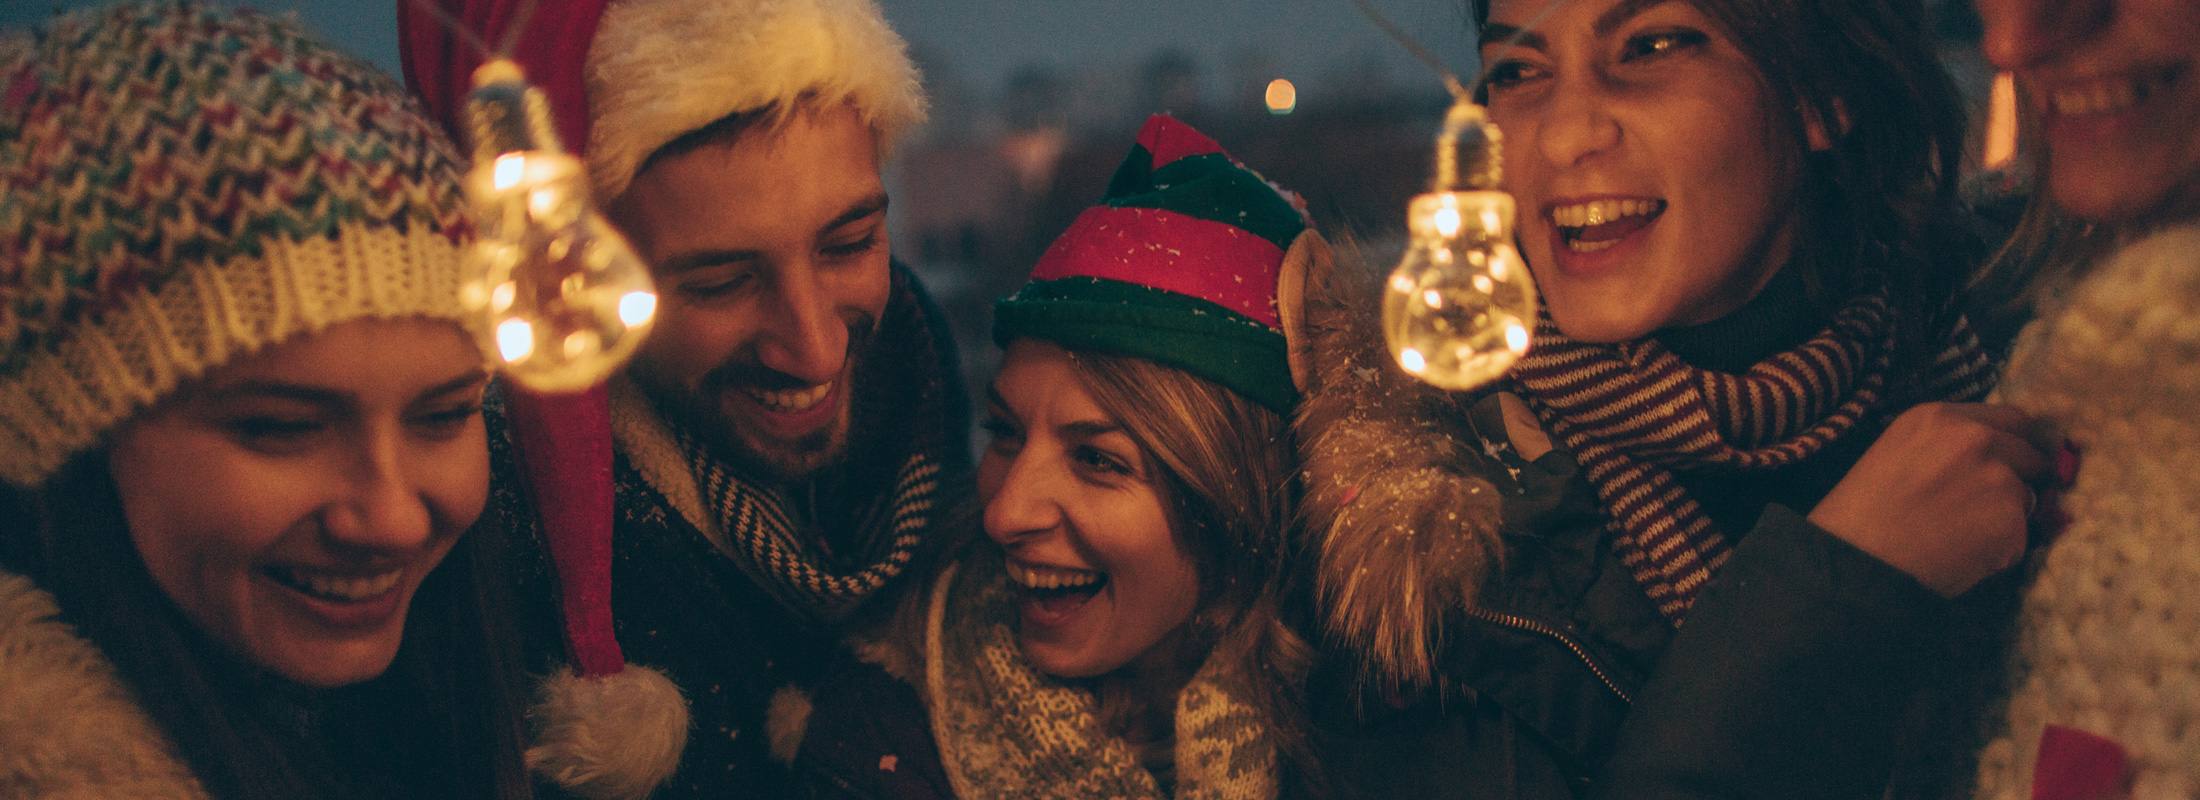 Promotion and incentive ideas - Top 10 ways to get in the festive spirit